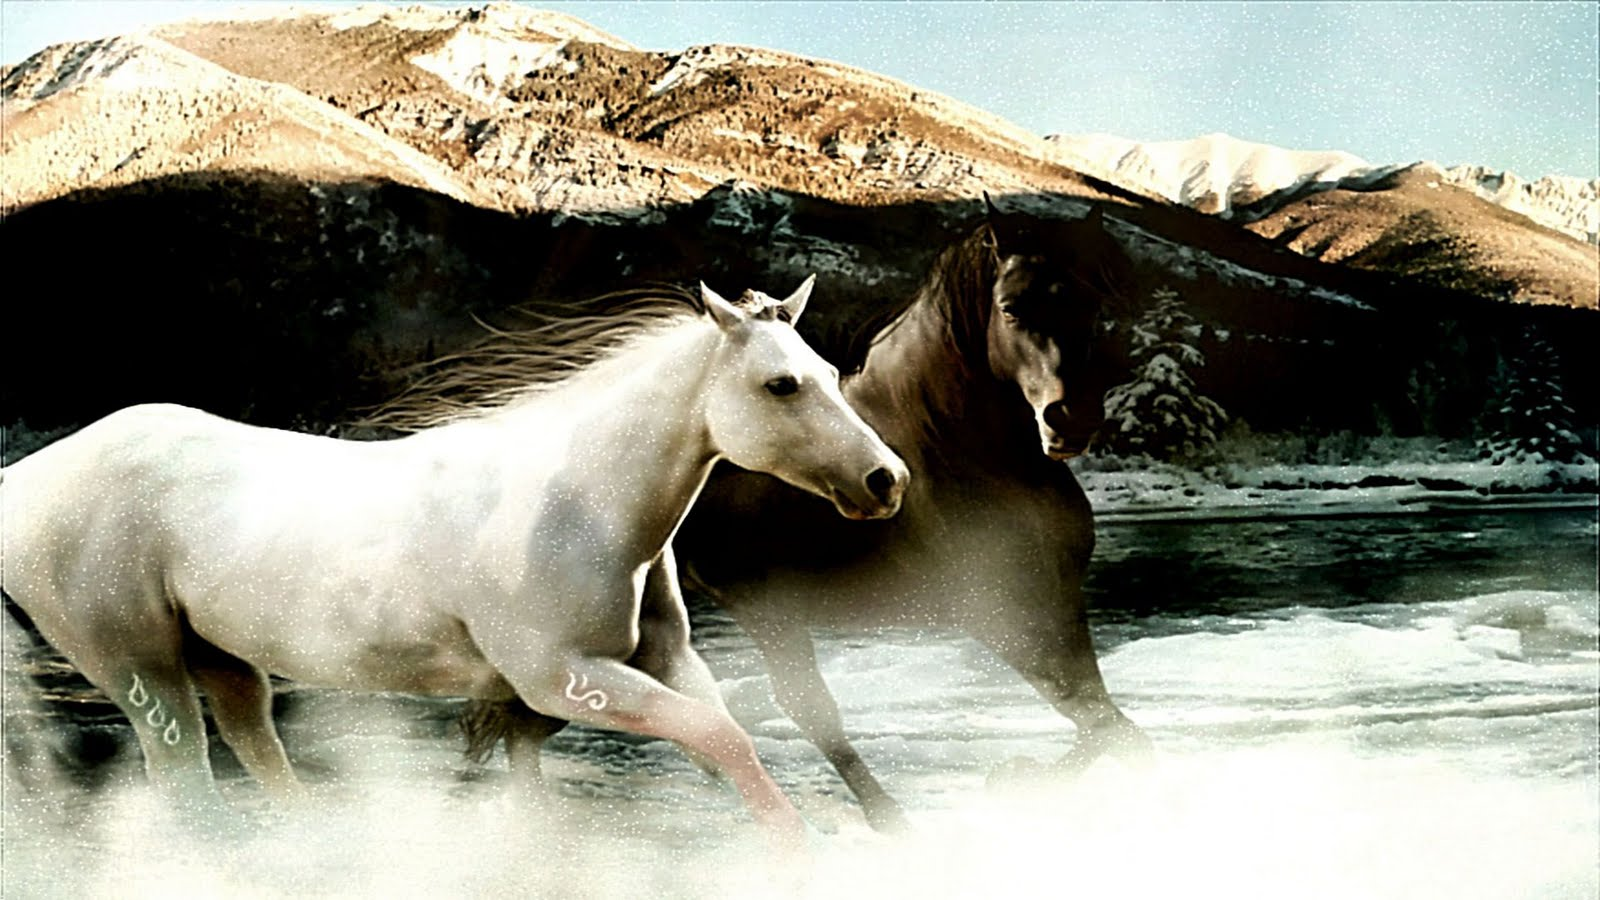 Download   Wallpaper Horse Couple - White-and-Brown-Horse-Running-Wallpaper  Snapshot_447988.jpg